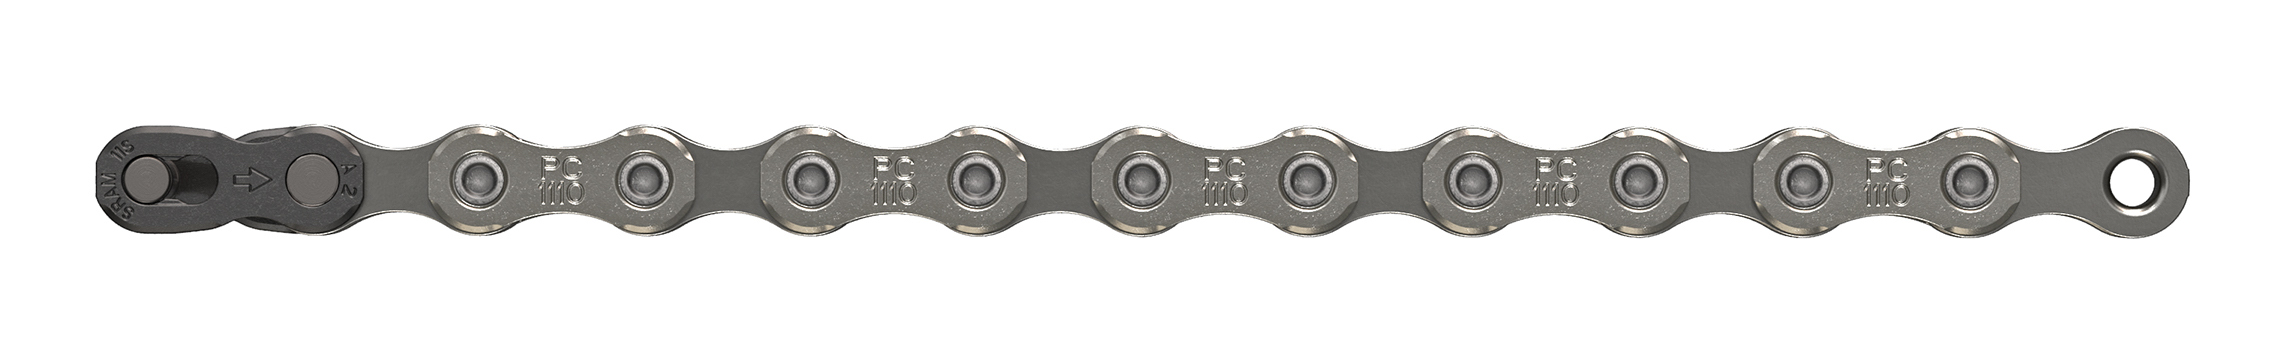 SRAM_MTB_Chain_PC-1110_Side_M